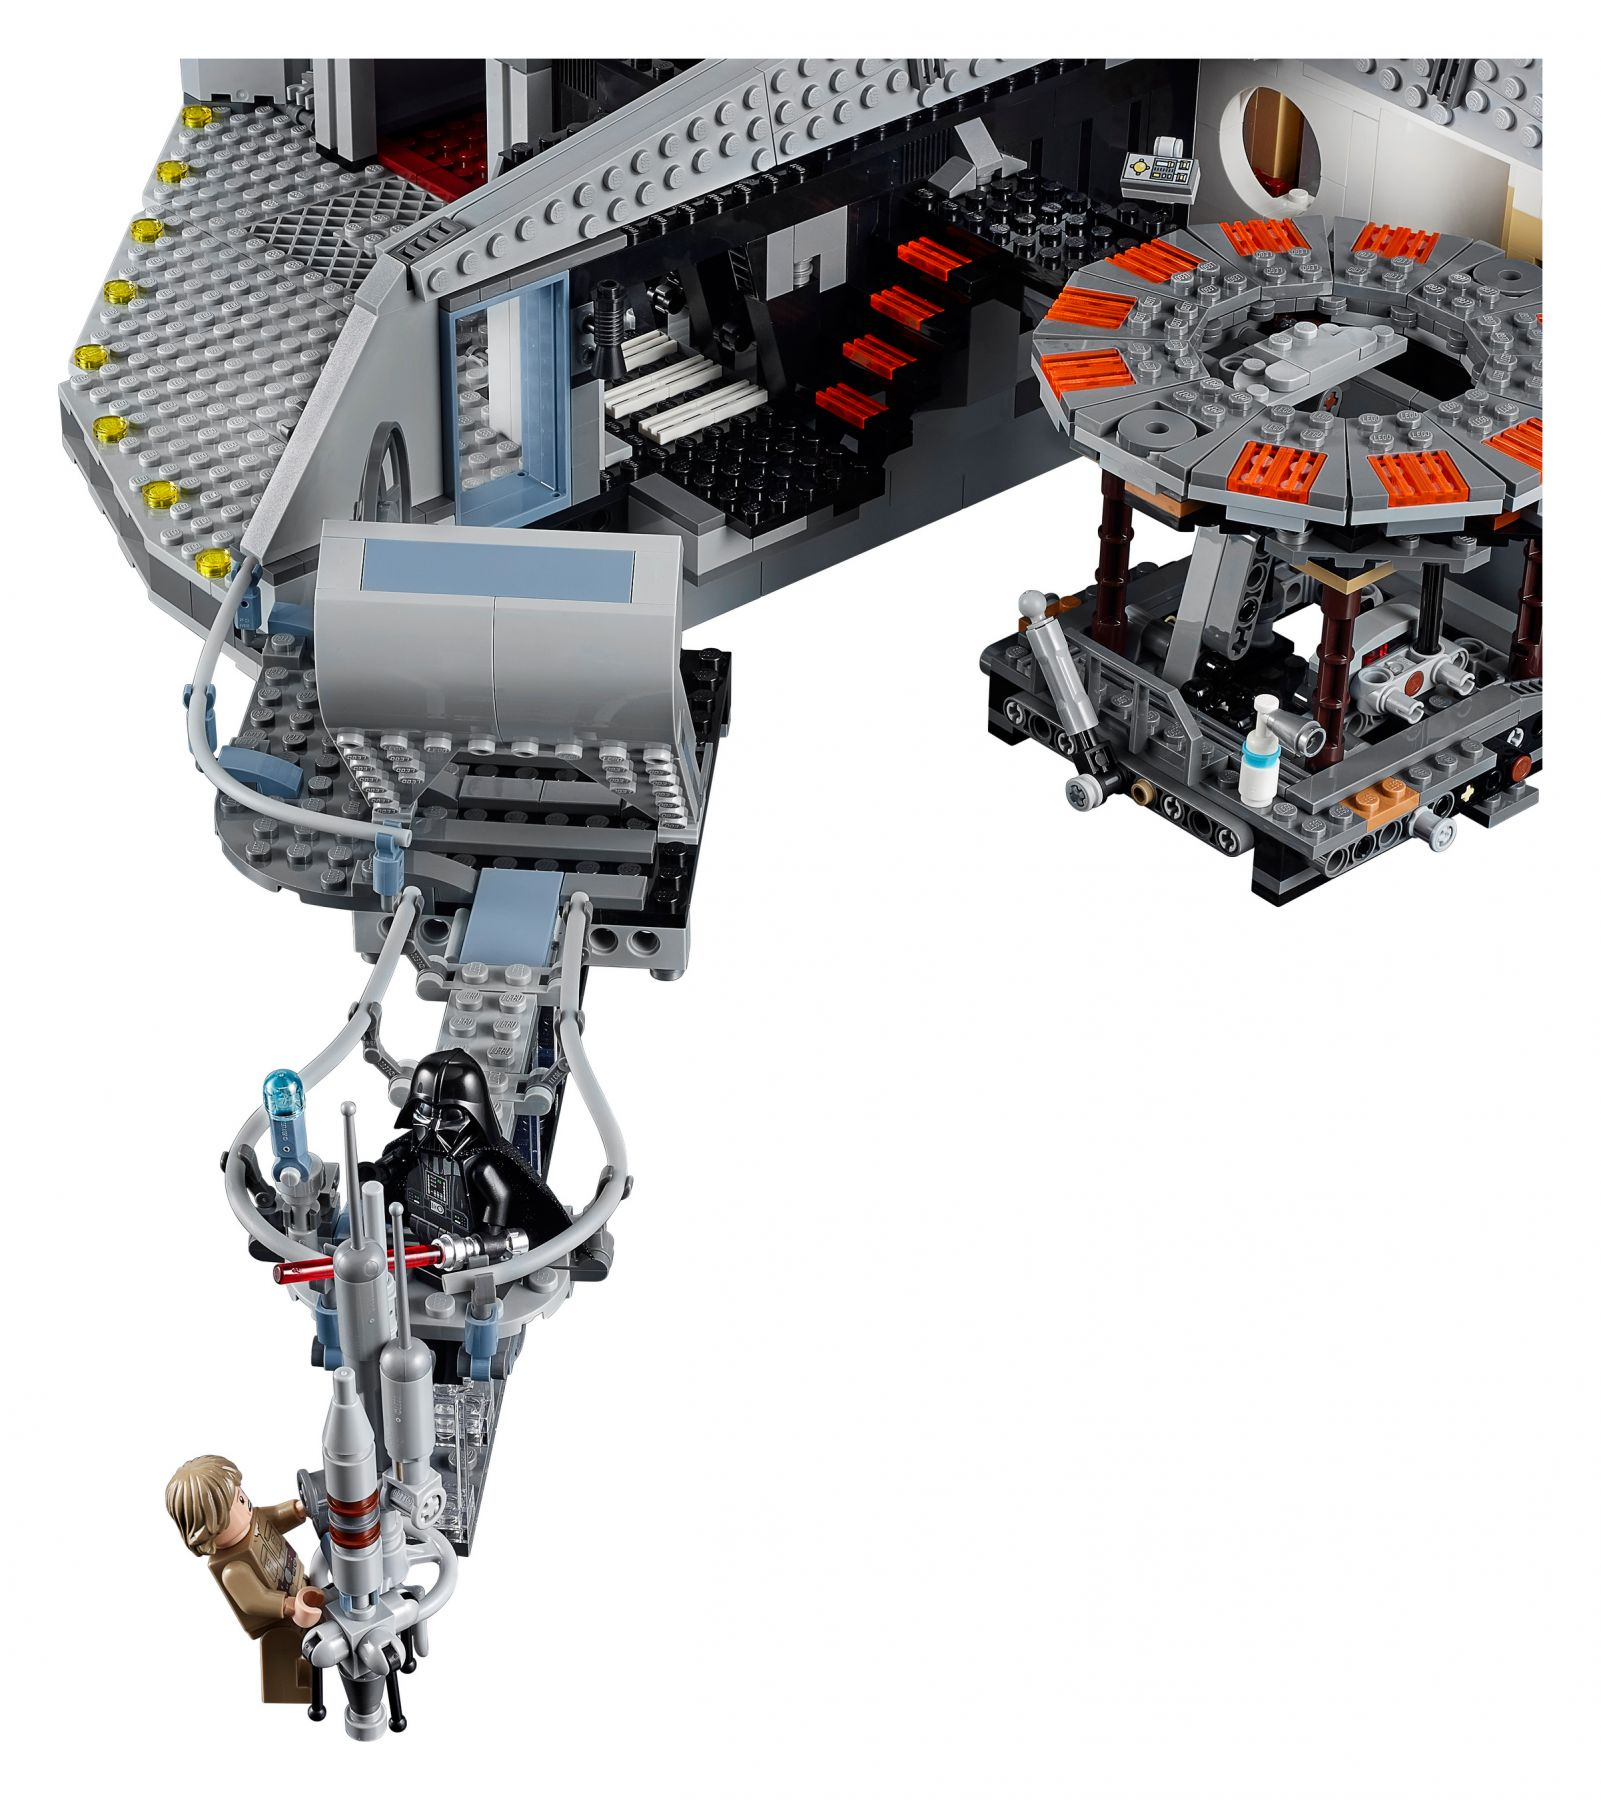 LEGO Star Wars 75222 Verrat in Cloud City™ LEGO_75222_alt5.jpg